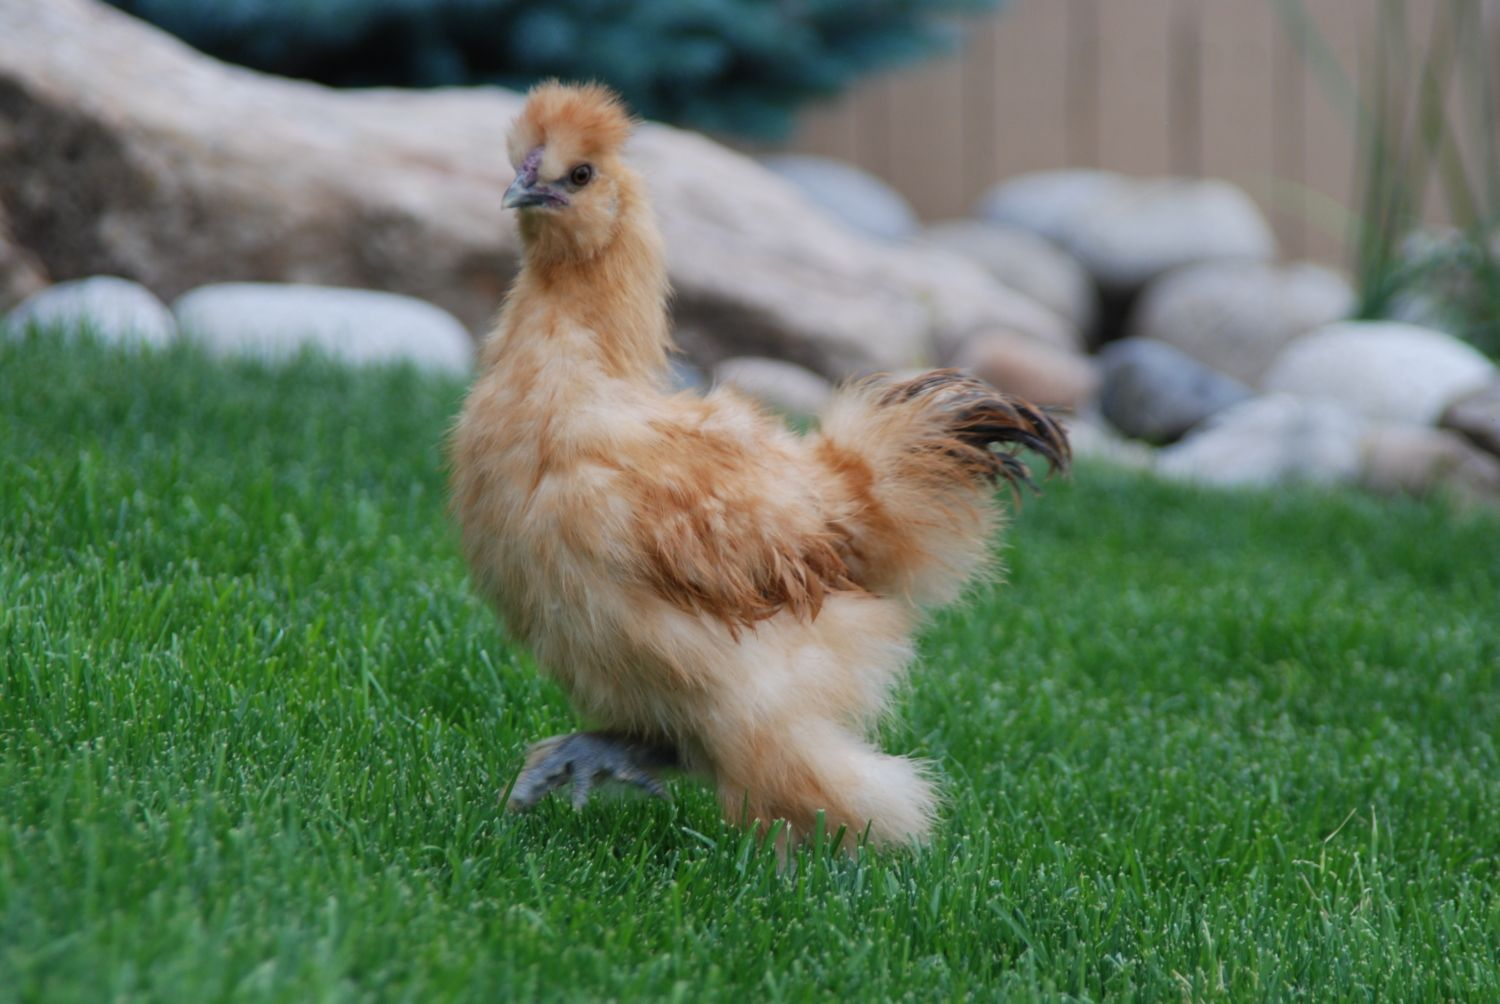 2 chickens in need of new home in castle rock colorado area